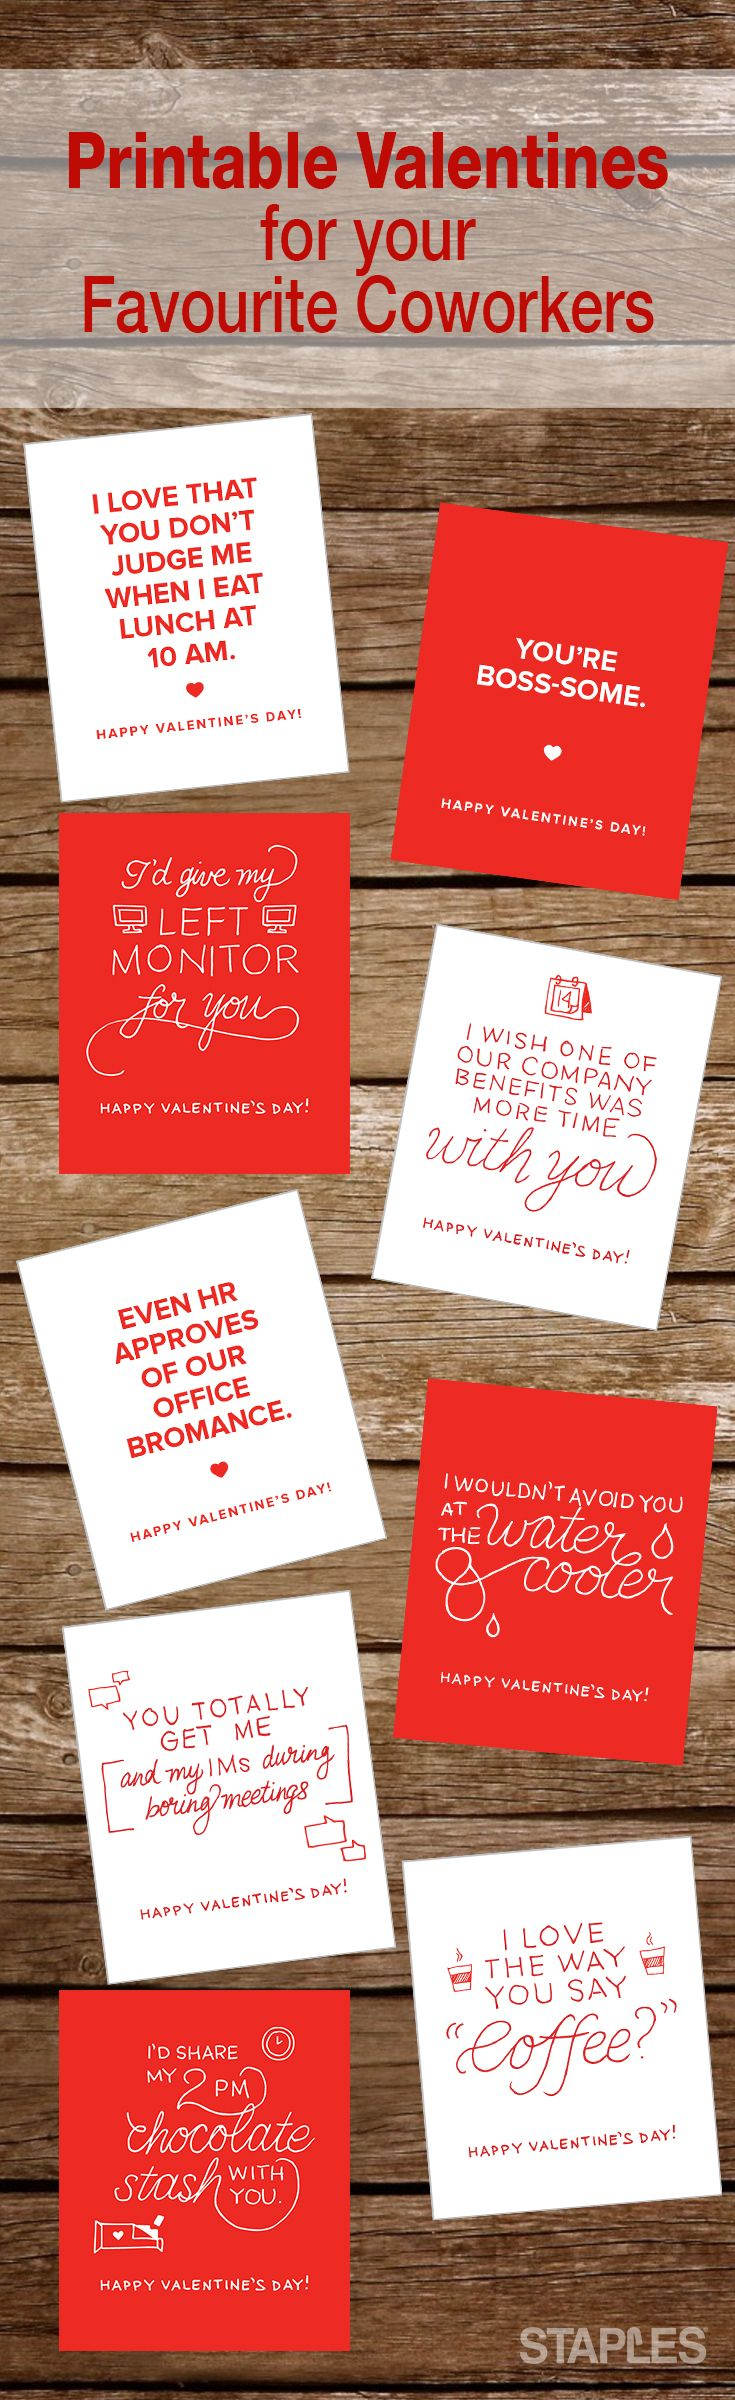 valentines office ideas. free printable valentines for your favourite coworker office ideas